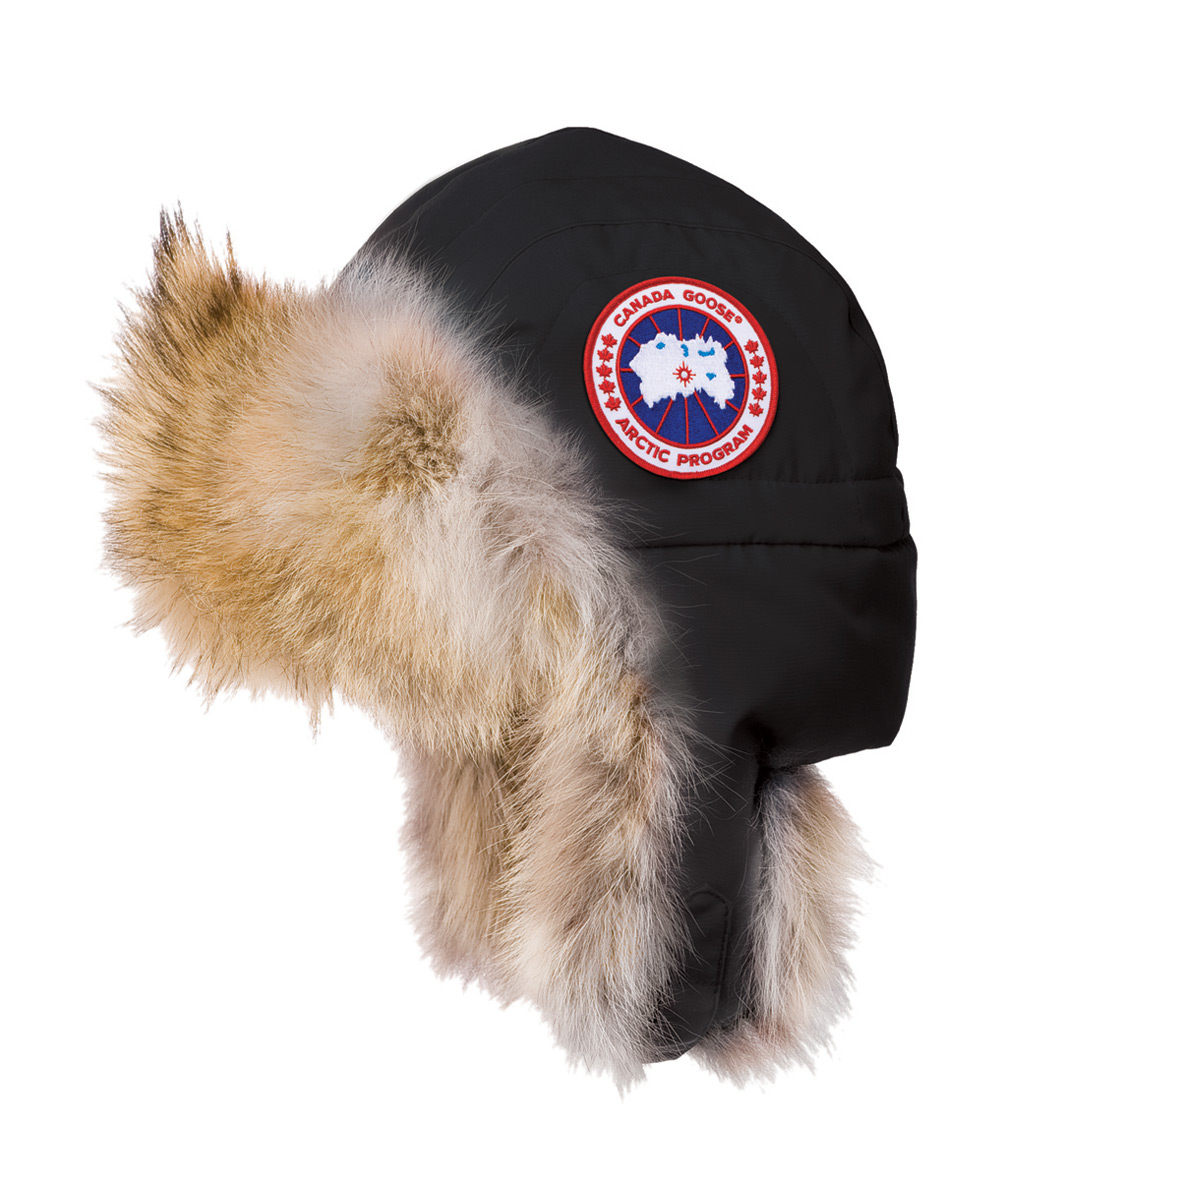 Canada Goose Unisex Aviator Hat BLACK For Men